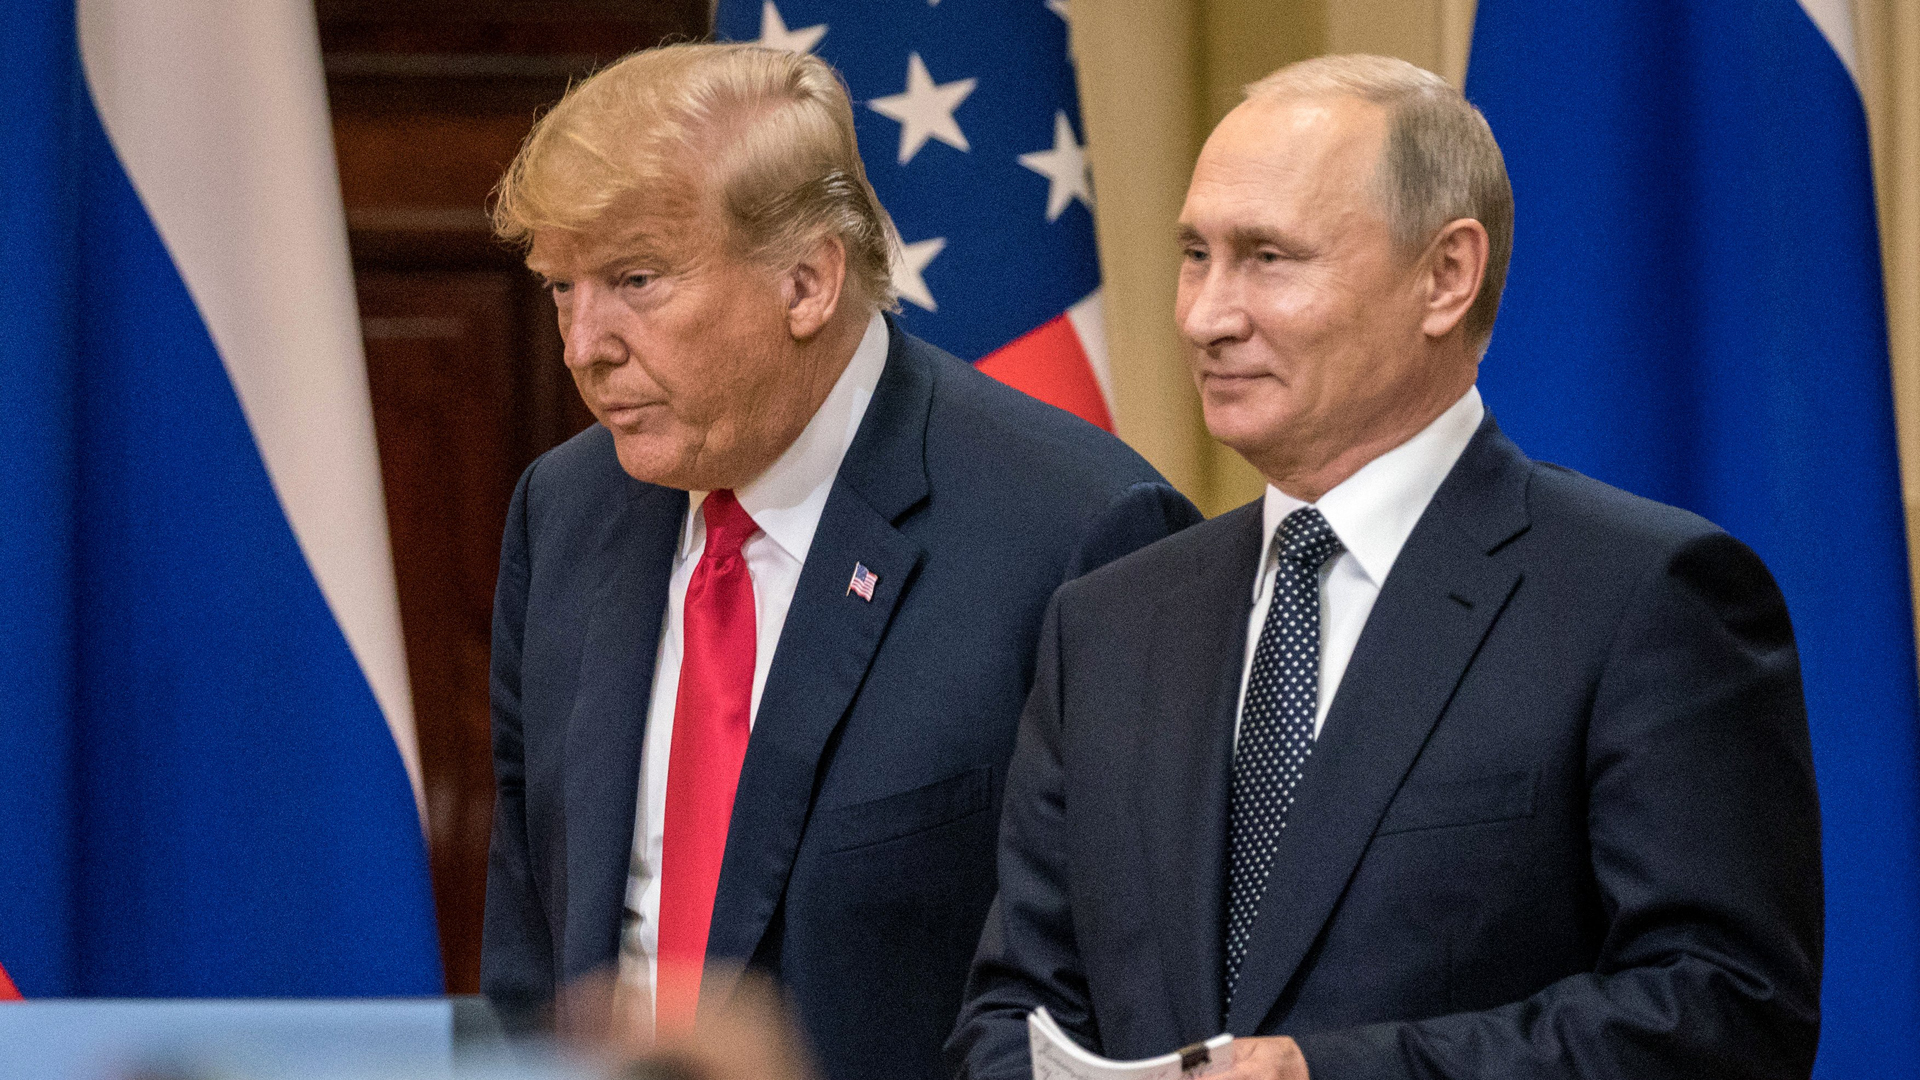 President Donald Trump and Russian President Vladimir Putin arrive to waiting media during a joint press conference after their summit on July 16, 2018, in Helsinki, Finland. (Credit: Chris McGrath/Getty Images)